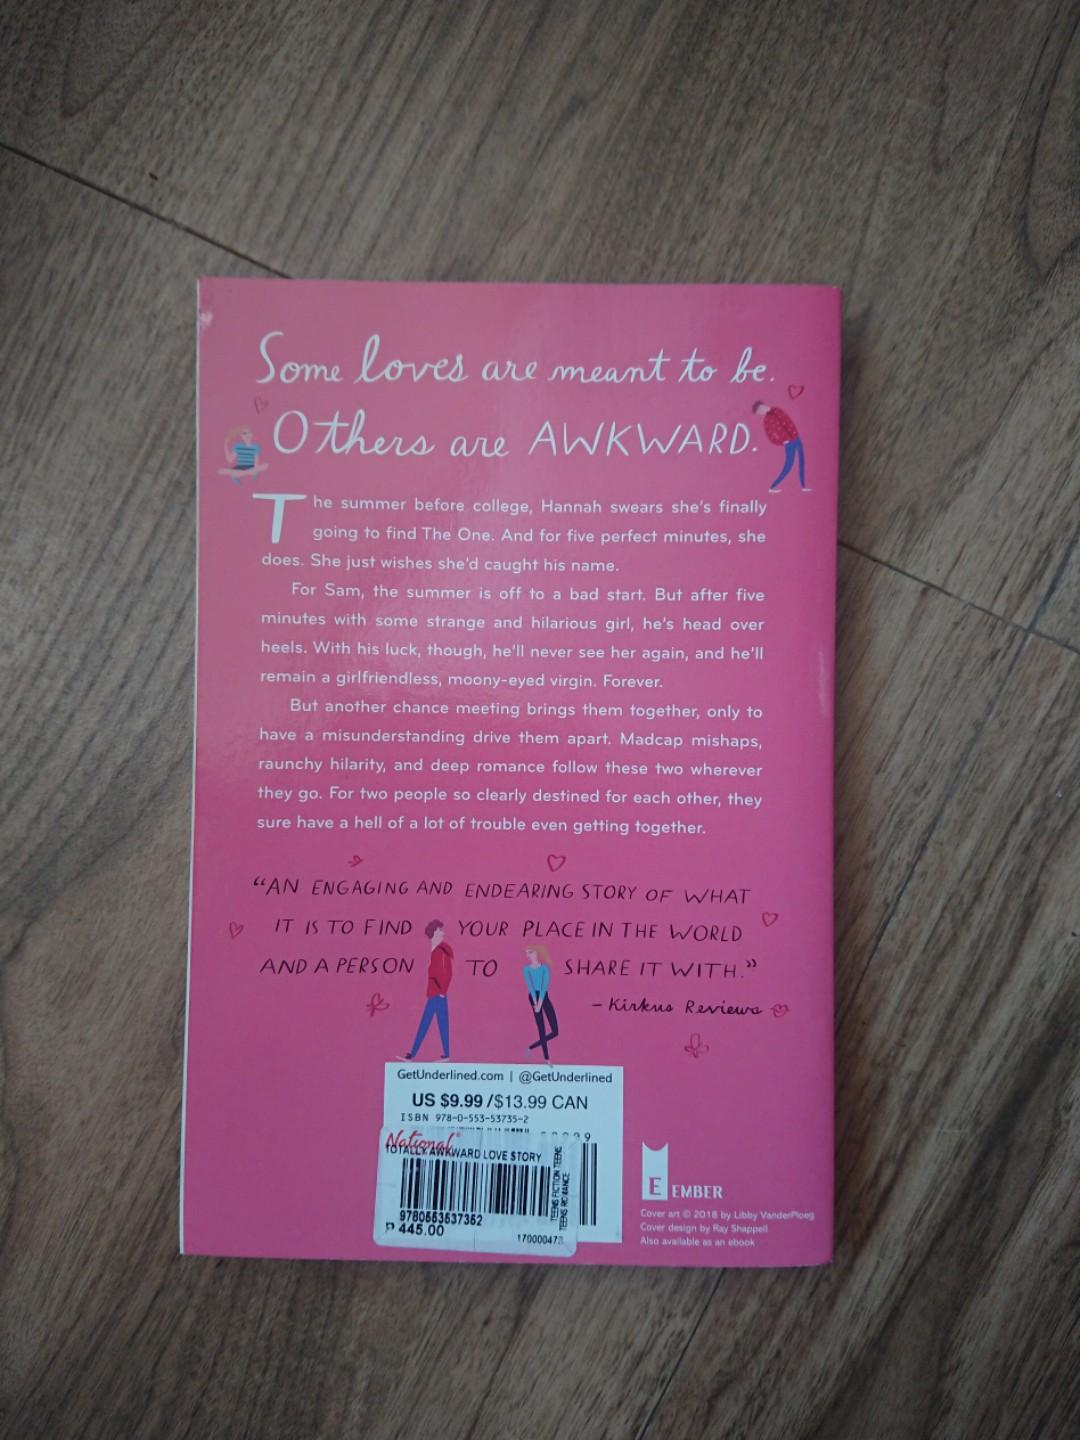 Take All for 600 ☺️  MY (not so) PERFECT LIFE by Sophie Kinsella The Time of my Life by Cecilia Ahern  A totally awkward Love Story - Tom Ellen and Lucy Ivison  Pushing Perfect - Michelle Falkoff